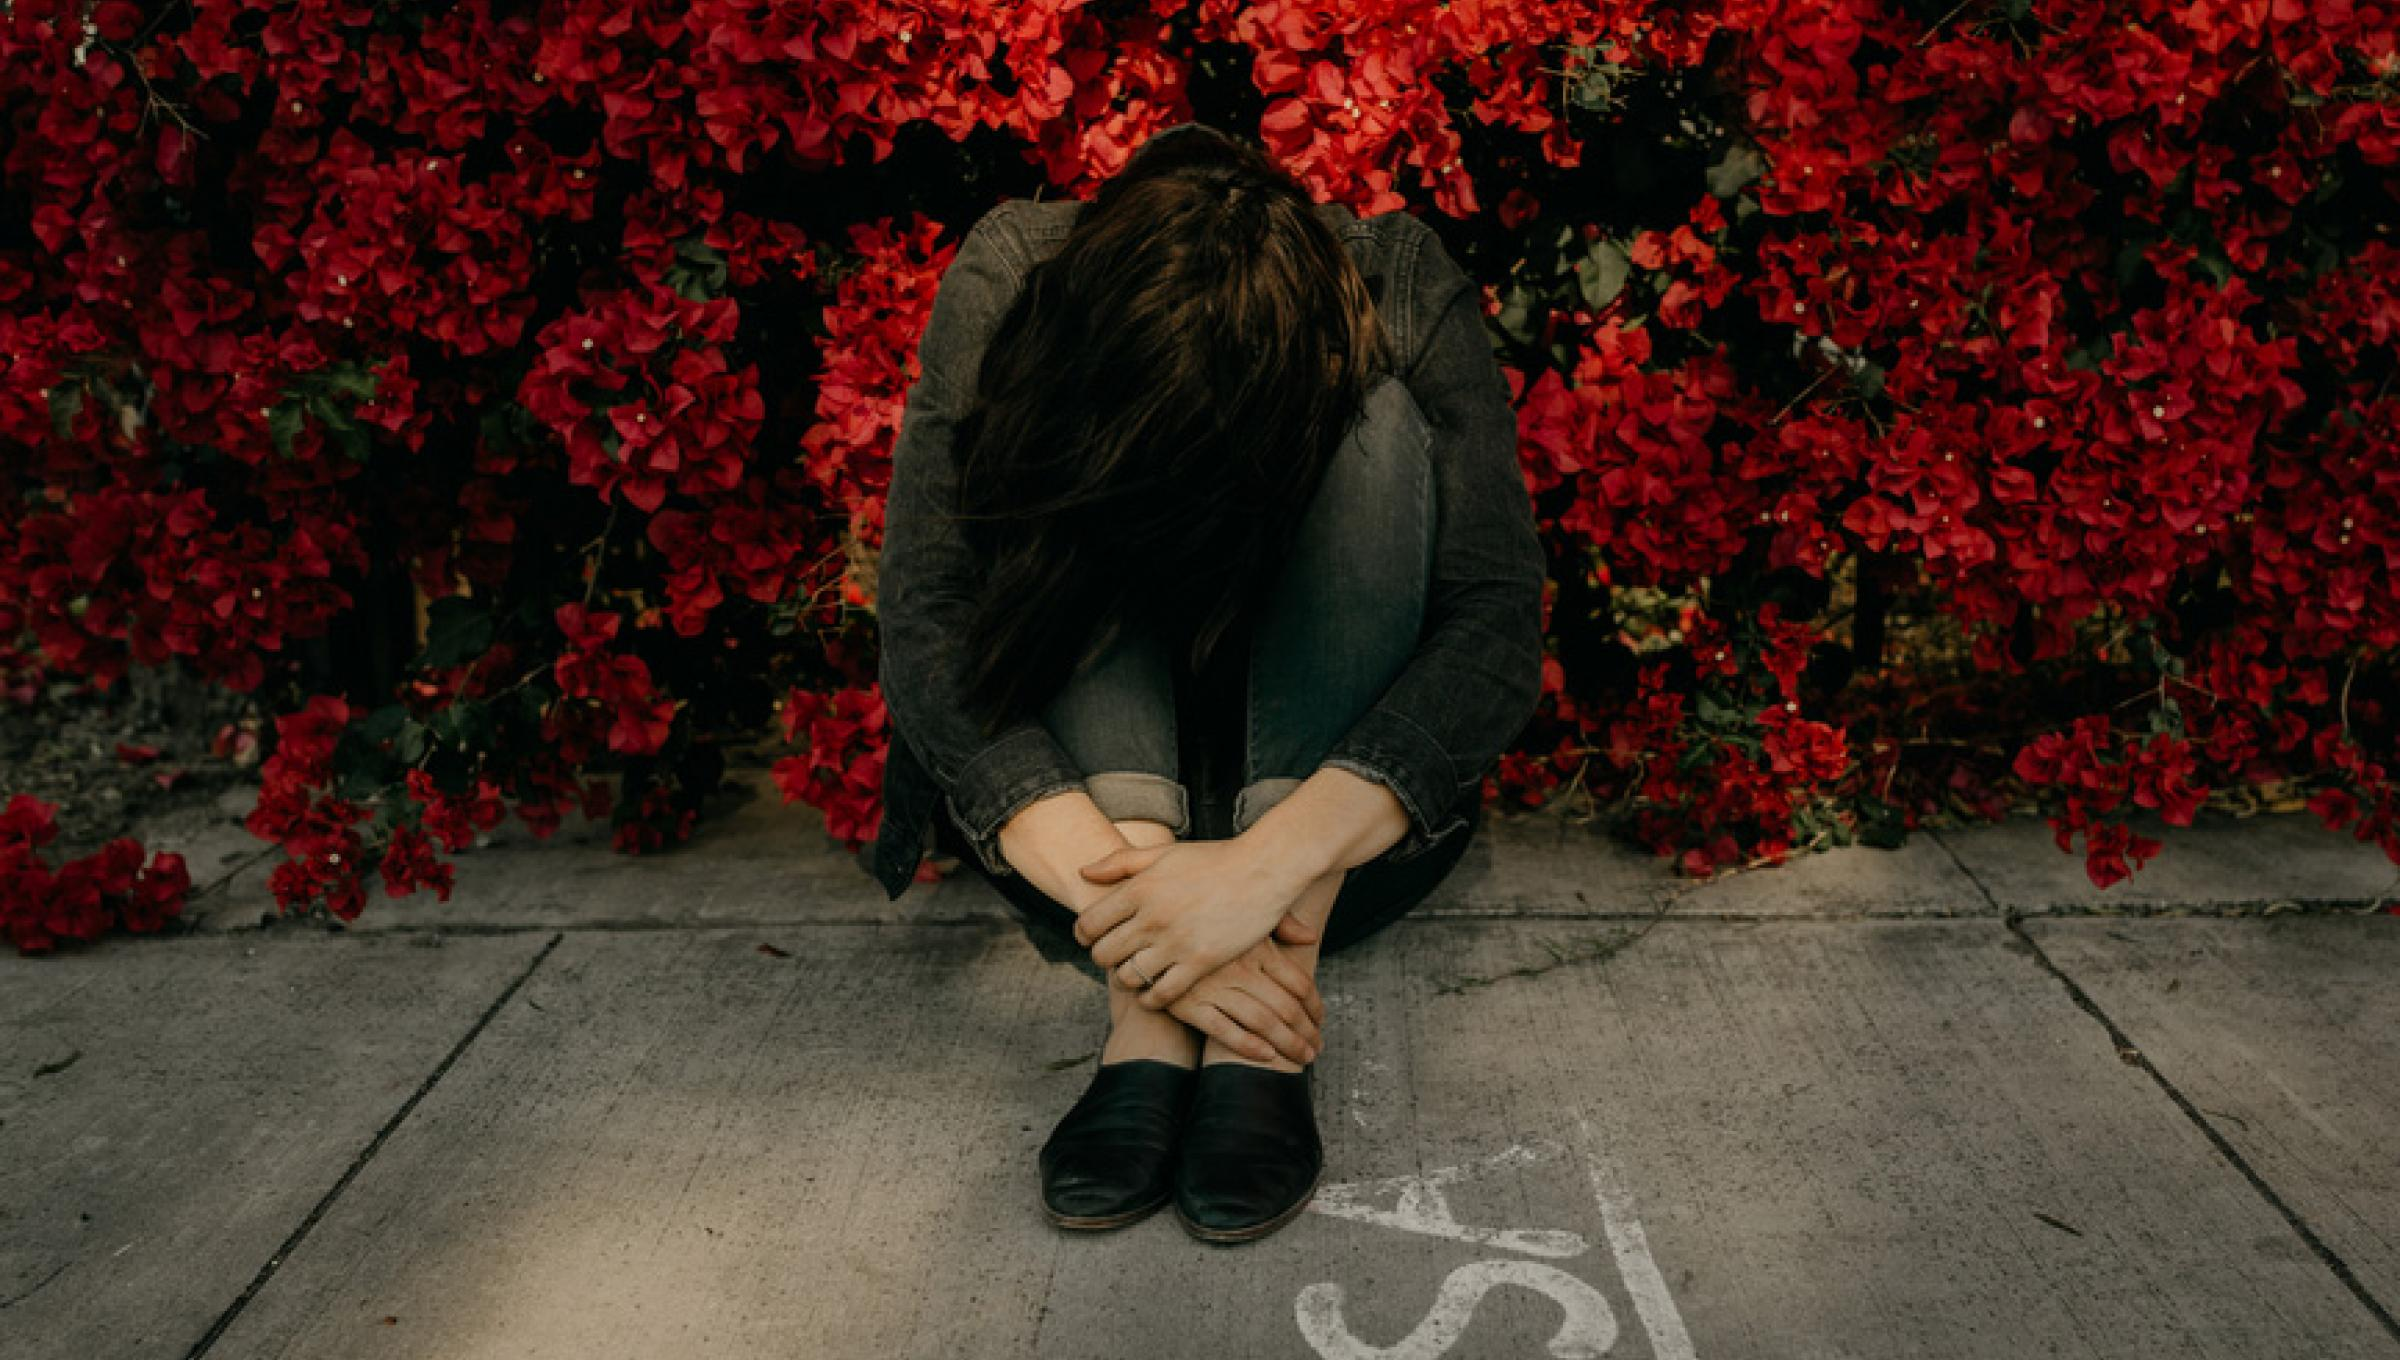 Woman with head down sitting amidst red flowers